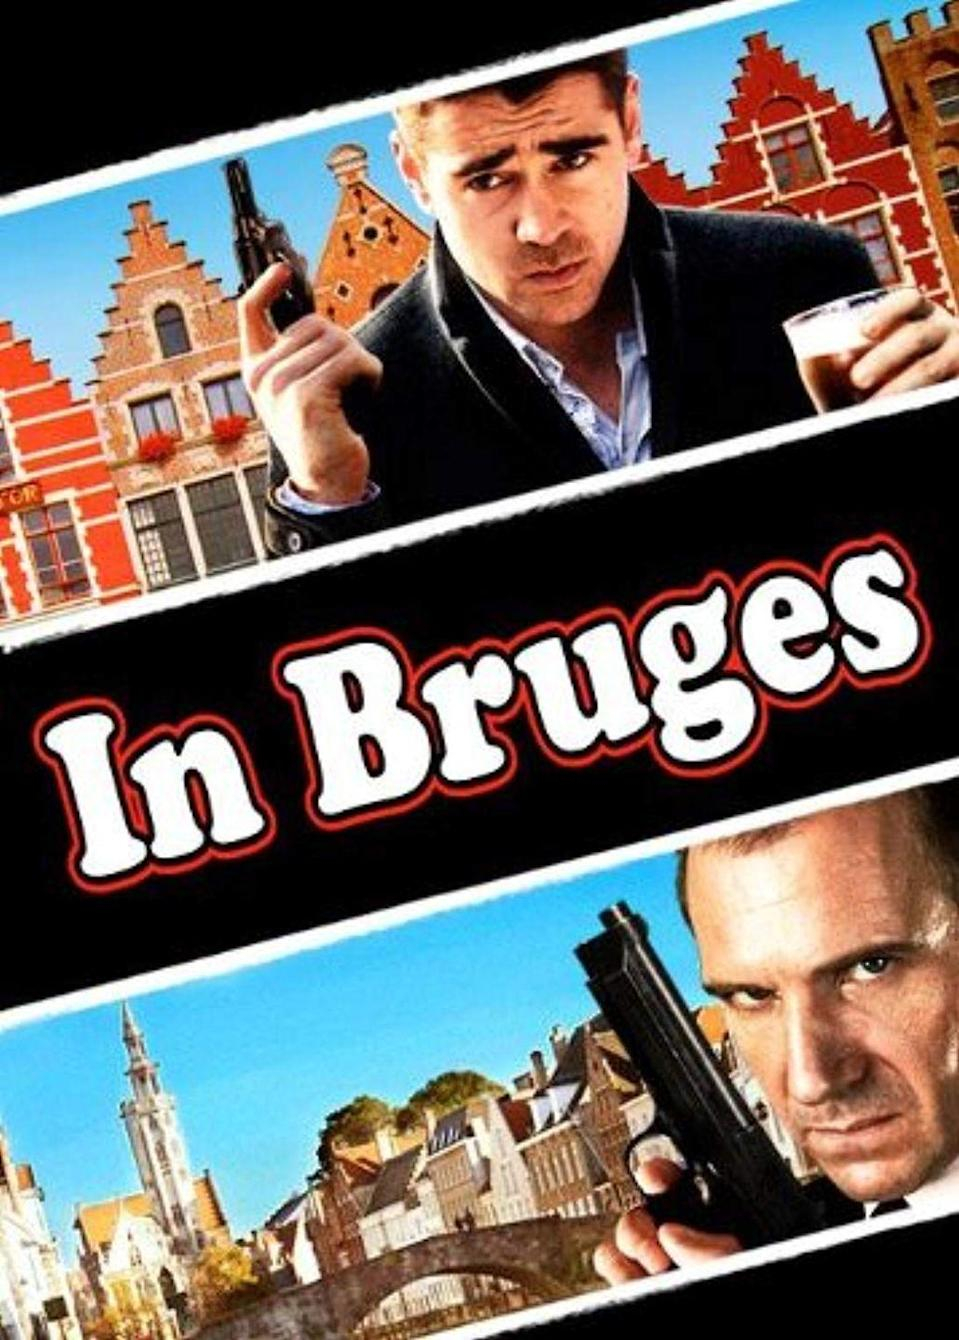 """<p>Christmas is mentioned only a few times in this movie — but if you're not in the mood for a family flick or rom-com, try this dark comedy set during the holiday season instead.</p><p><a class=""""link rapid-noclick-resp"""" href=""""https://www.amazon.com/Bruges-Colin-Farrell/dp/B002ZBZF9I/?tag=syn-yahoo-20&ascsubtag=%5Bartid%7C10055.g.1315%5Bsrc%7Cyahoo-us"""" rel=""""nofollow noopener"""" target=""""_blank"""" data-ylk=""""slk:WATCH NOW"""">WATCH NOW</a></p>"""